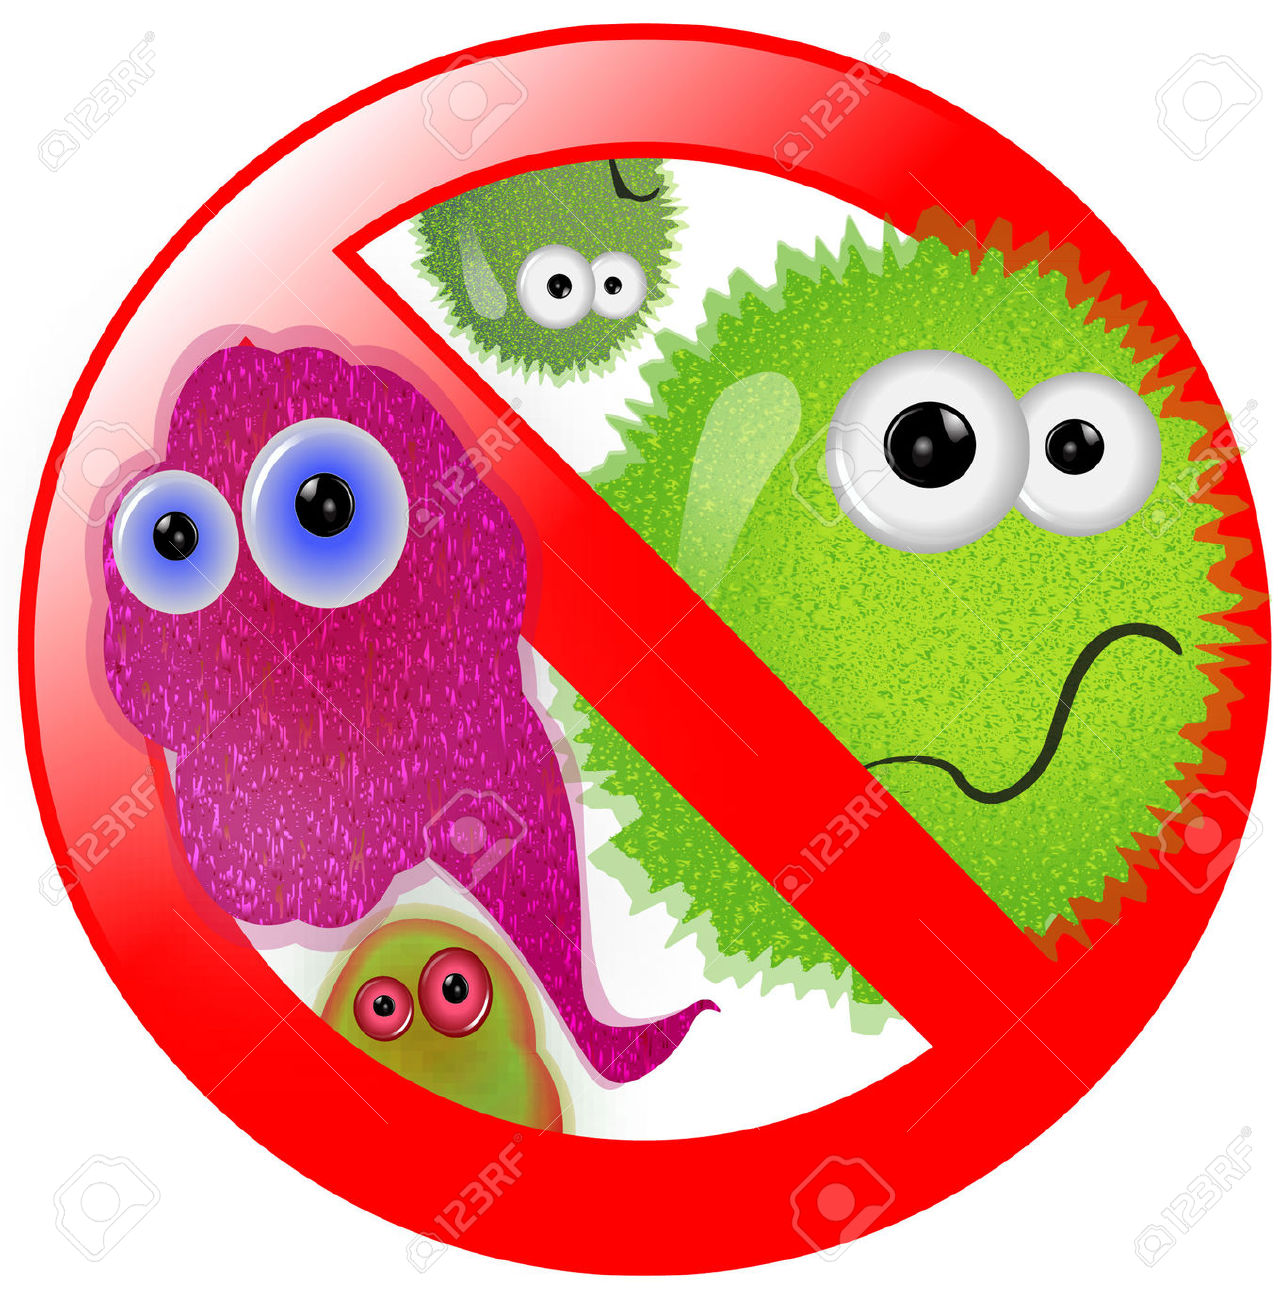 Art germs and clipartpost. Bacteria clipart virus